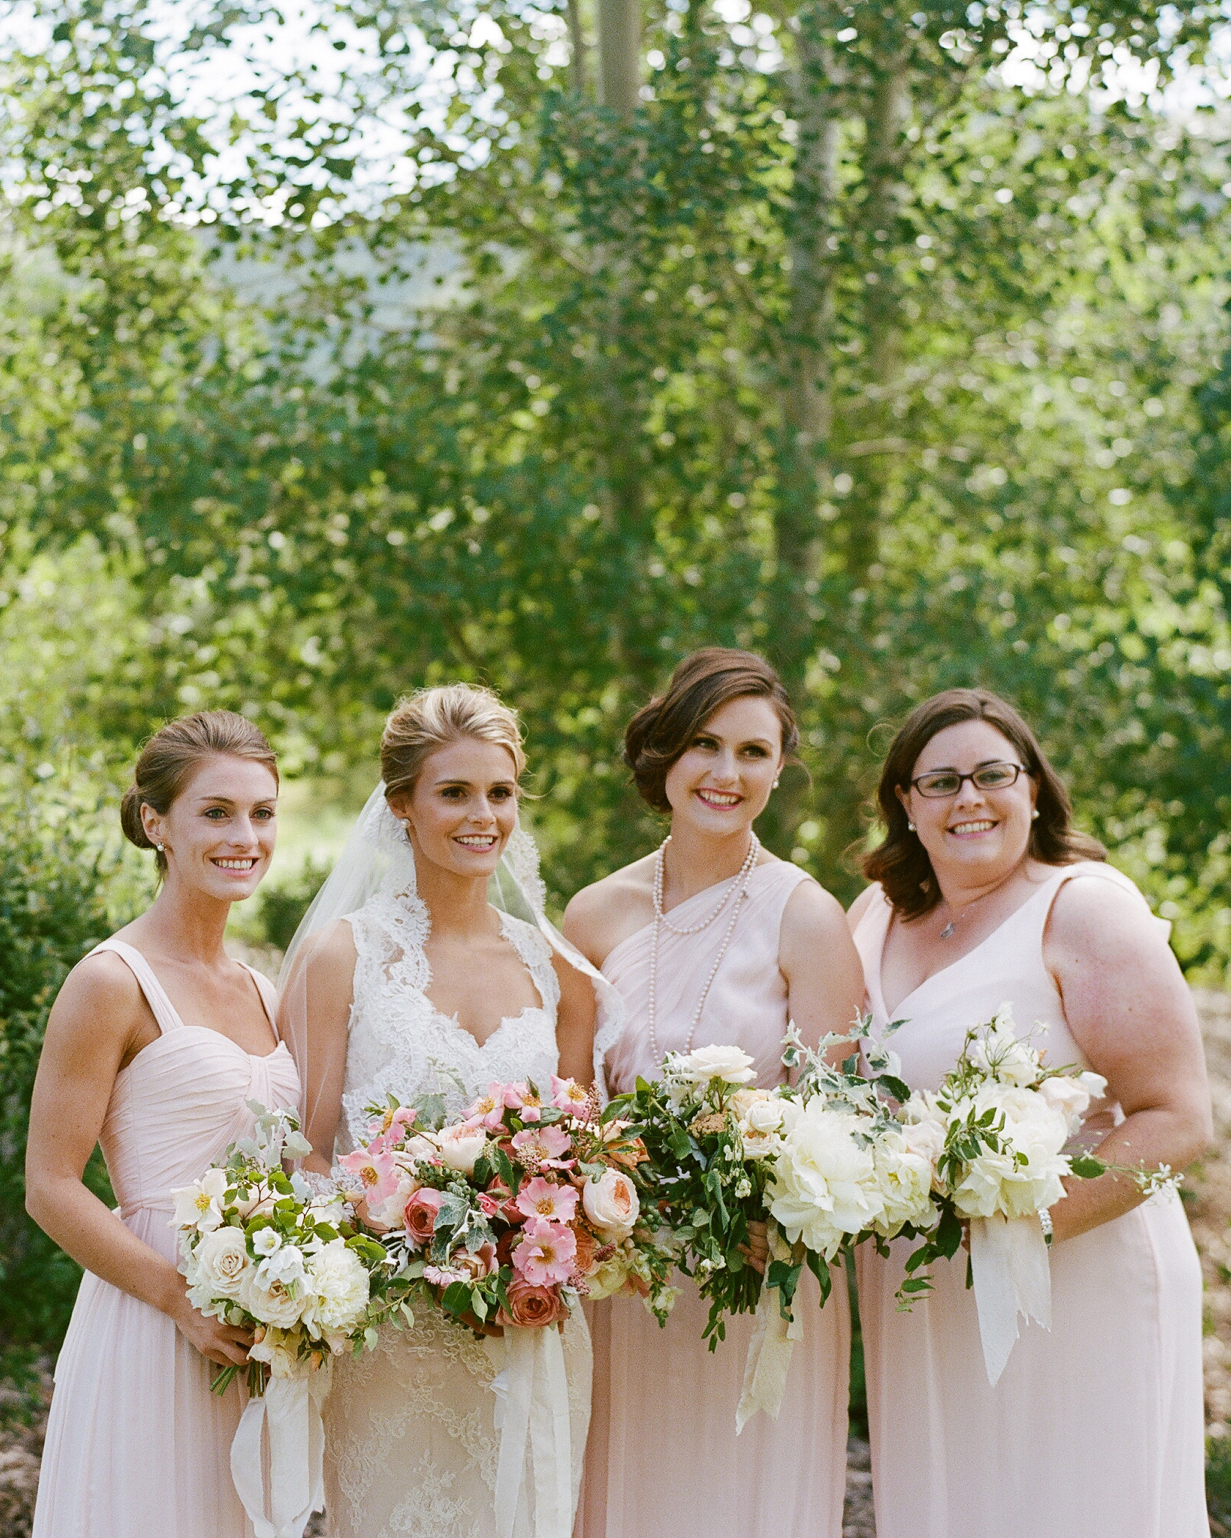 jamie-alex-wedding-bridesmaids-000022130013-s111544-1014.jpg